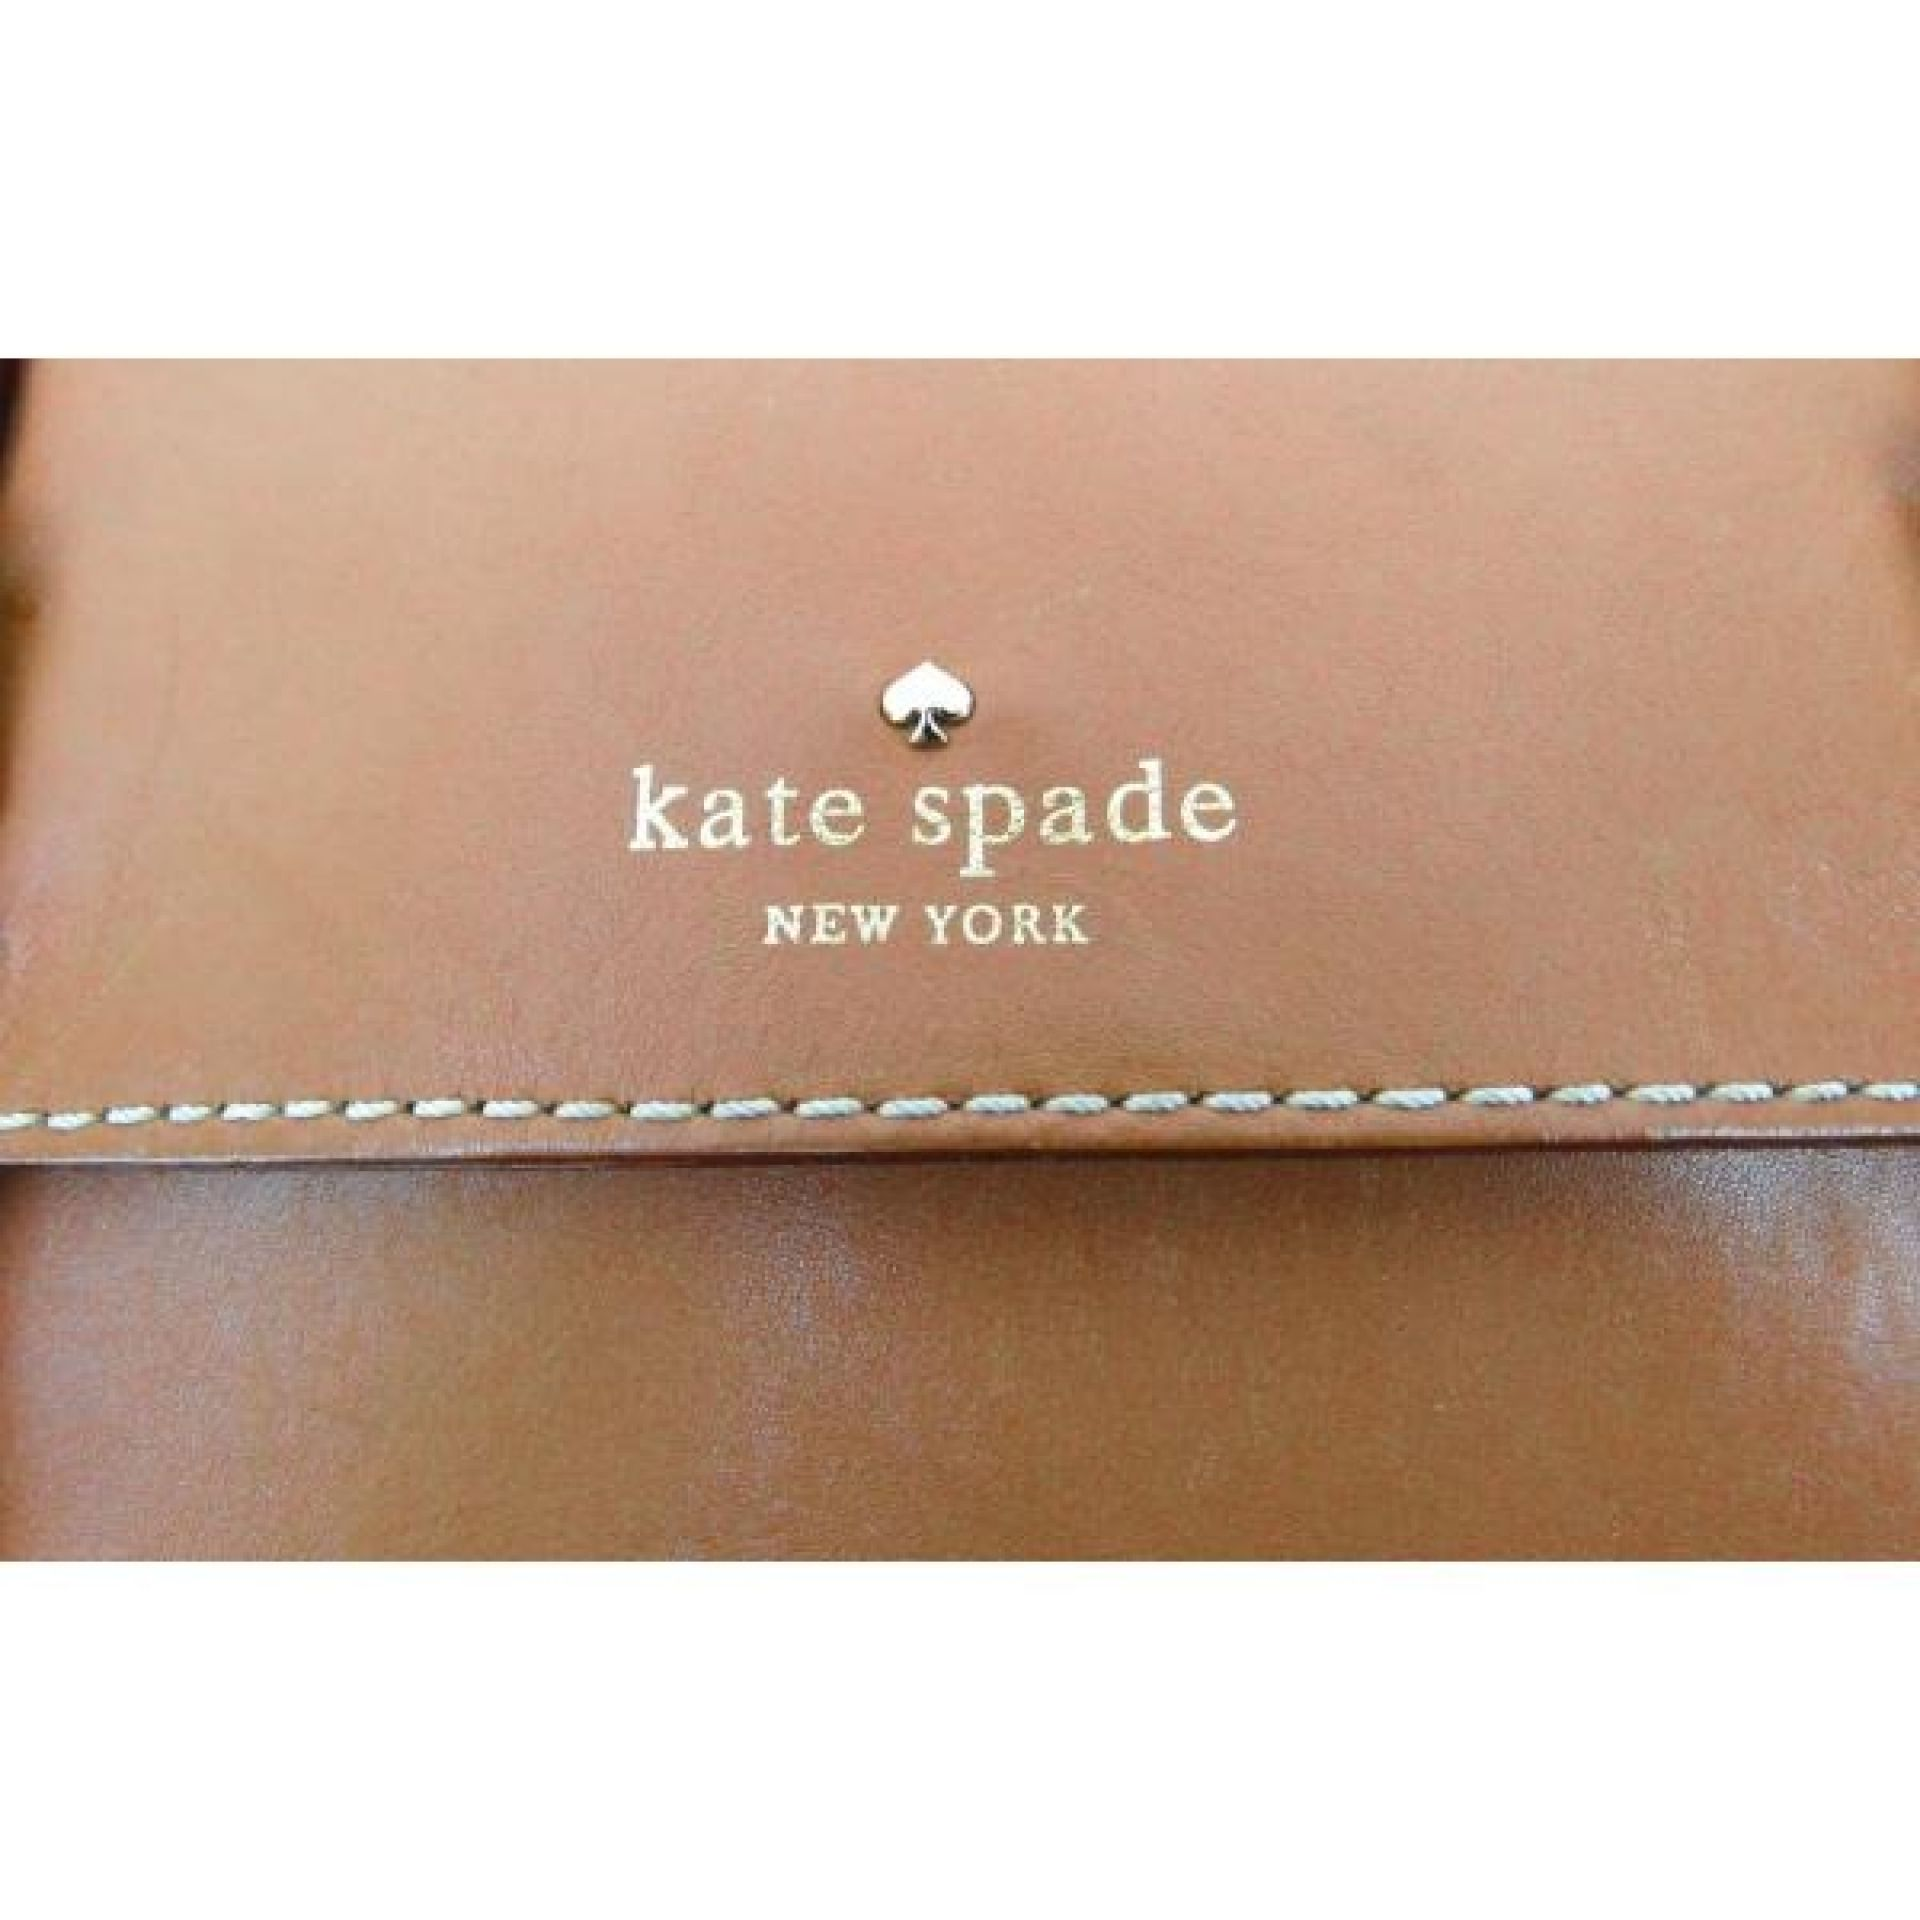 Kate Spade Tan Leather Essex Scout Messenger Crossbody Bag